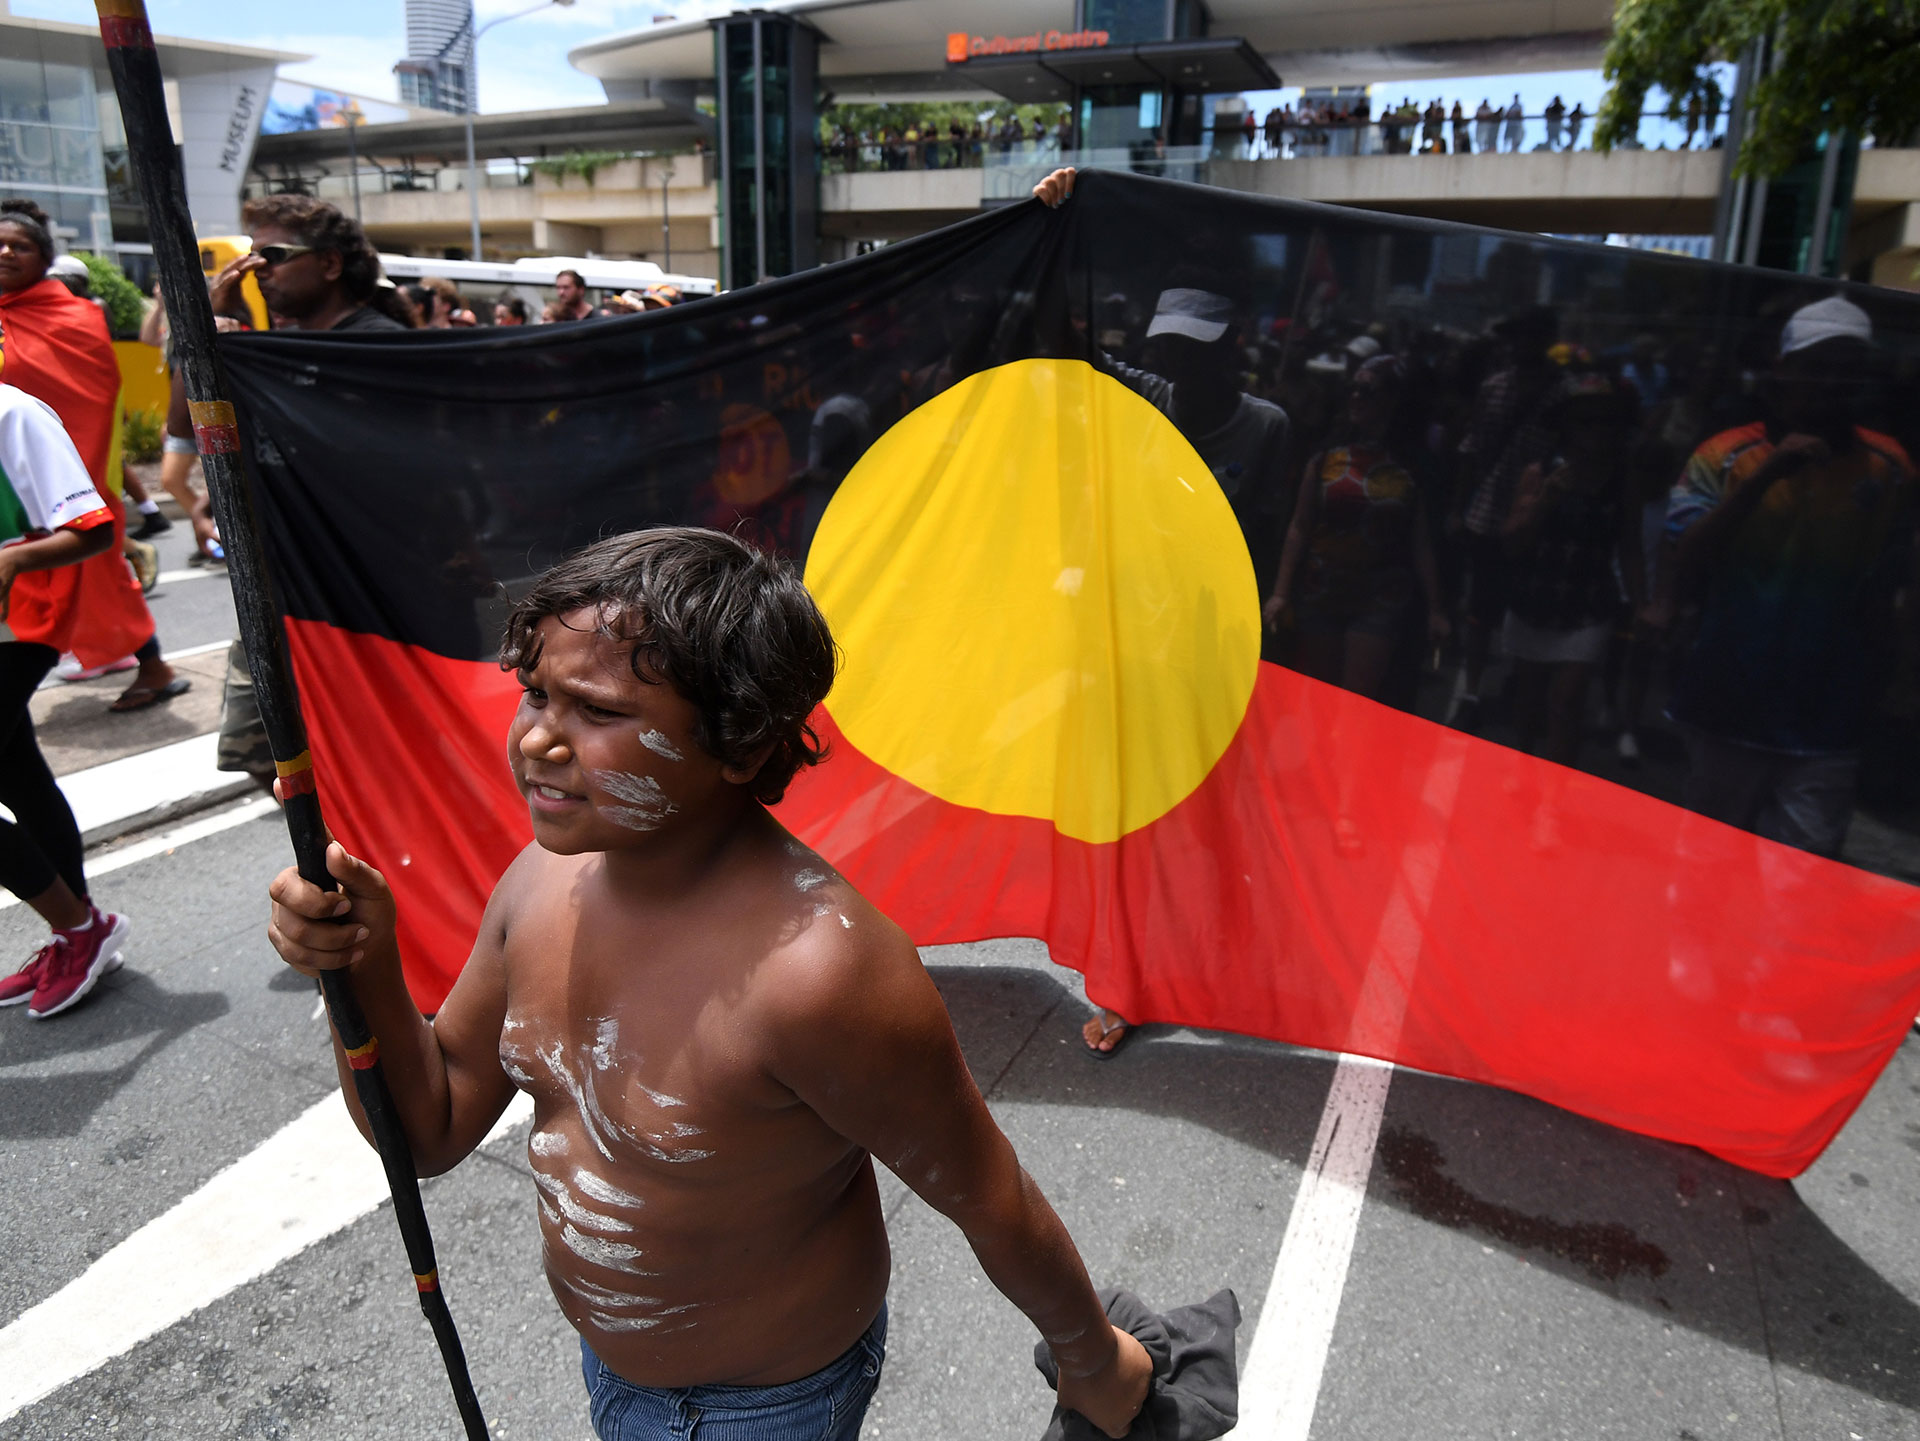 Melbourne's Yarra council votes unanimously to move Australia Day citizenship ceremonies